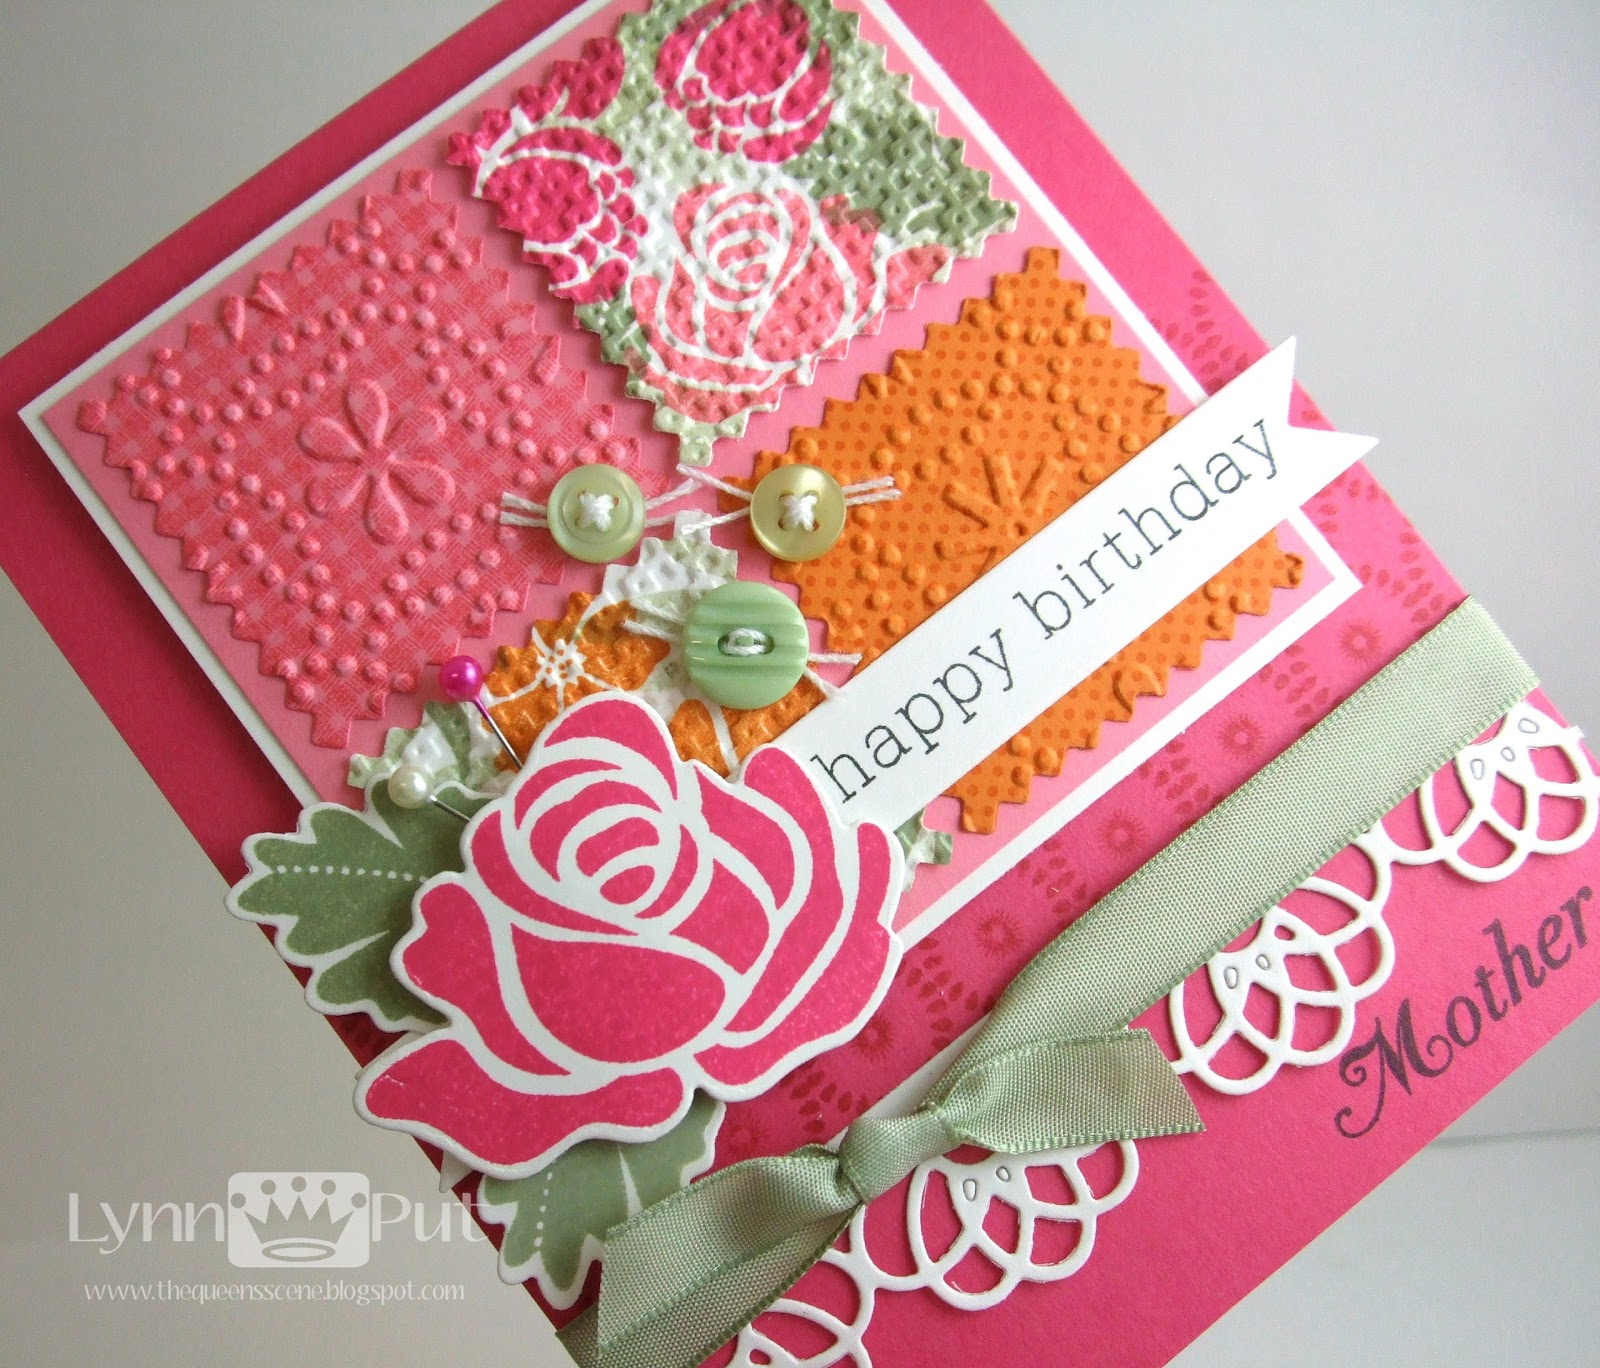 http://2.bp.blogspot.com/-FGCn-AnqRM0/T7KkZIYN1bI/AAAAAAAAFsg/-CUIxqgkgTU/s1600/PTI%20Rosie%20Posie%20Quilted%20Birthday%20Card%20Close%20Up%20copy.jpg